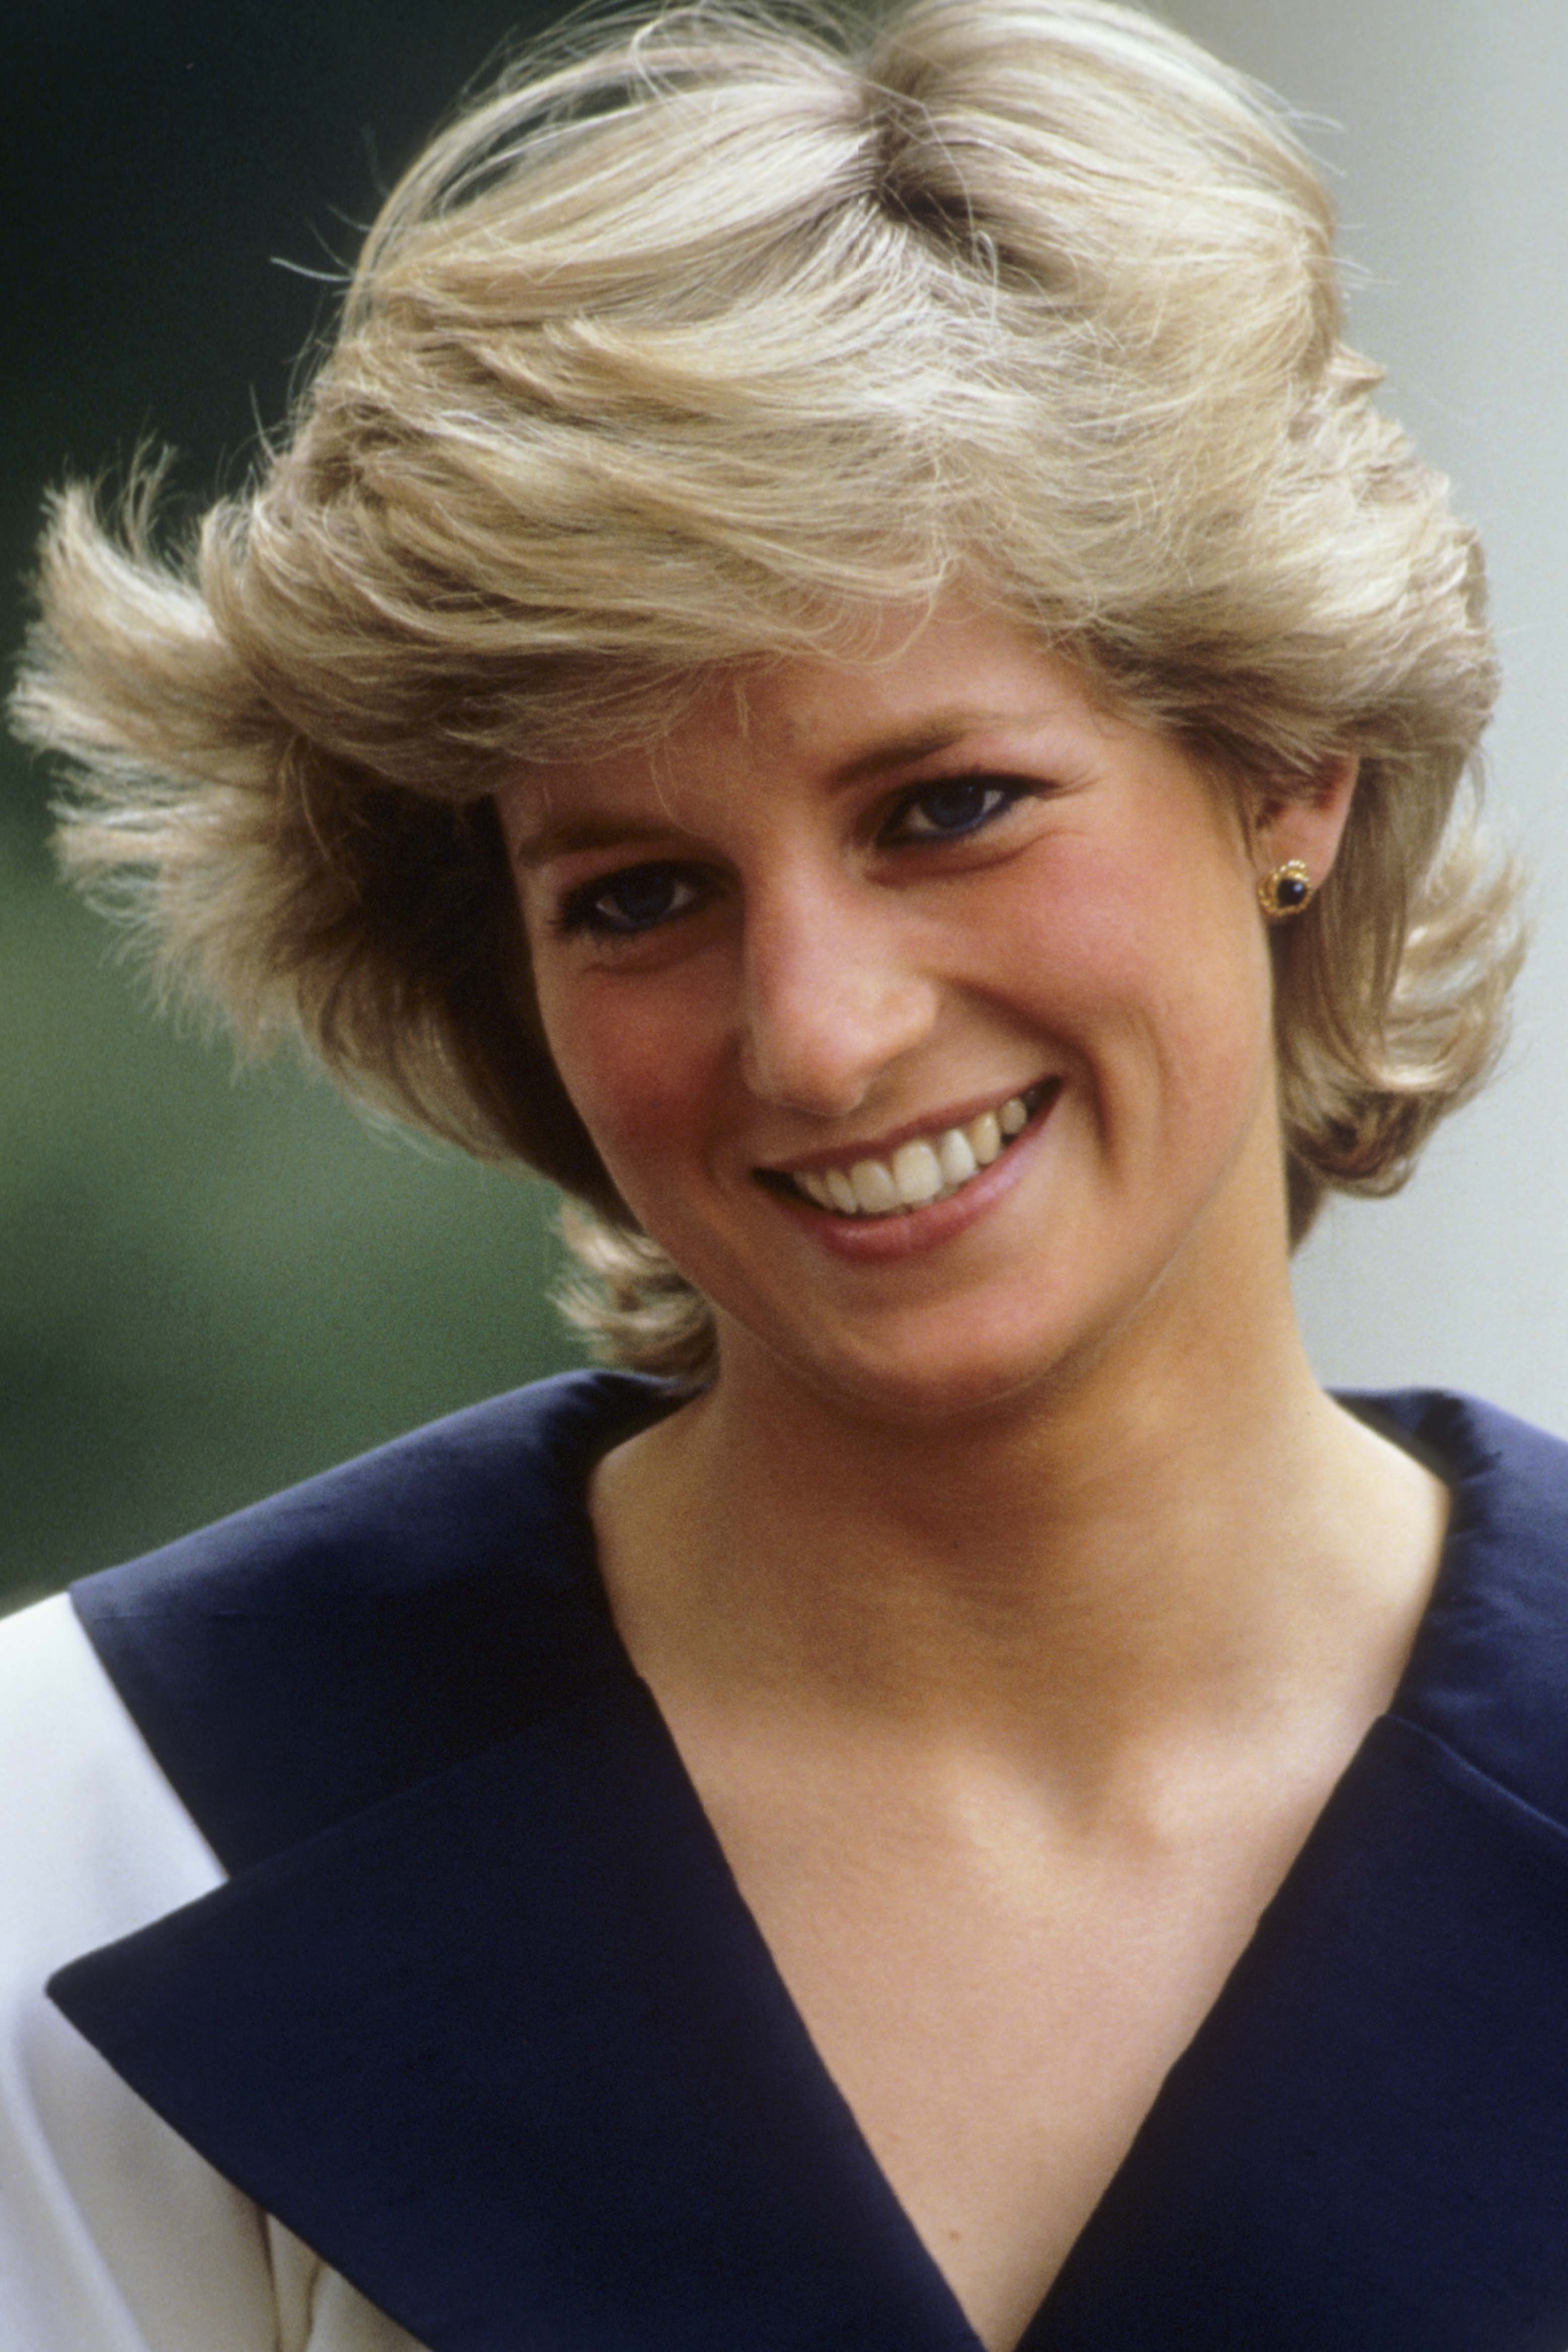 Diana Princess Of Wales: http://www.mydaily.co.uk/a-z/Diana-Princess-Of-Wales/